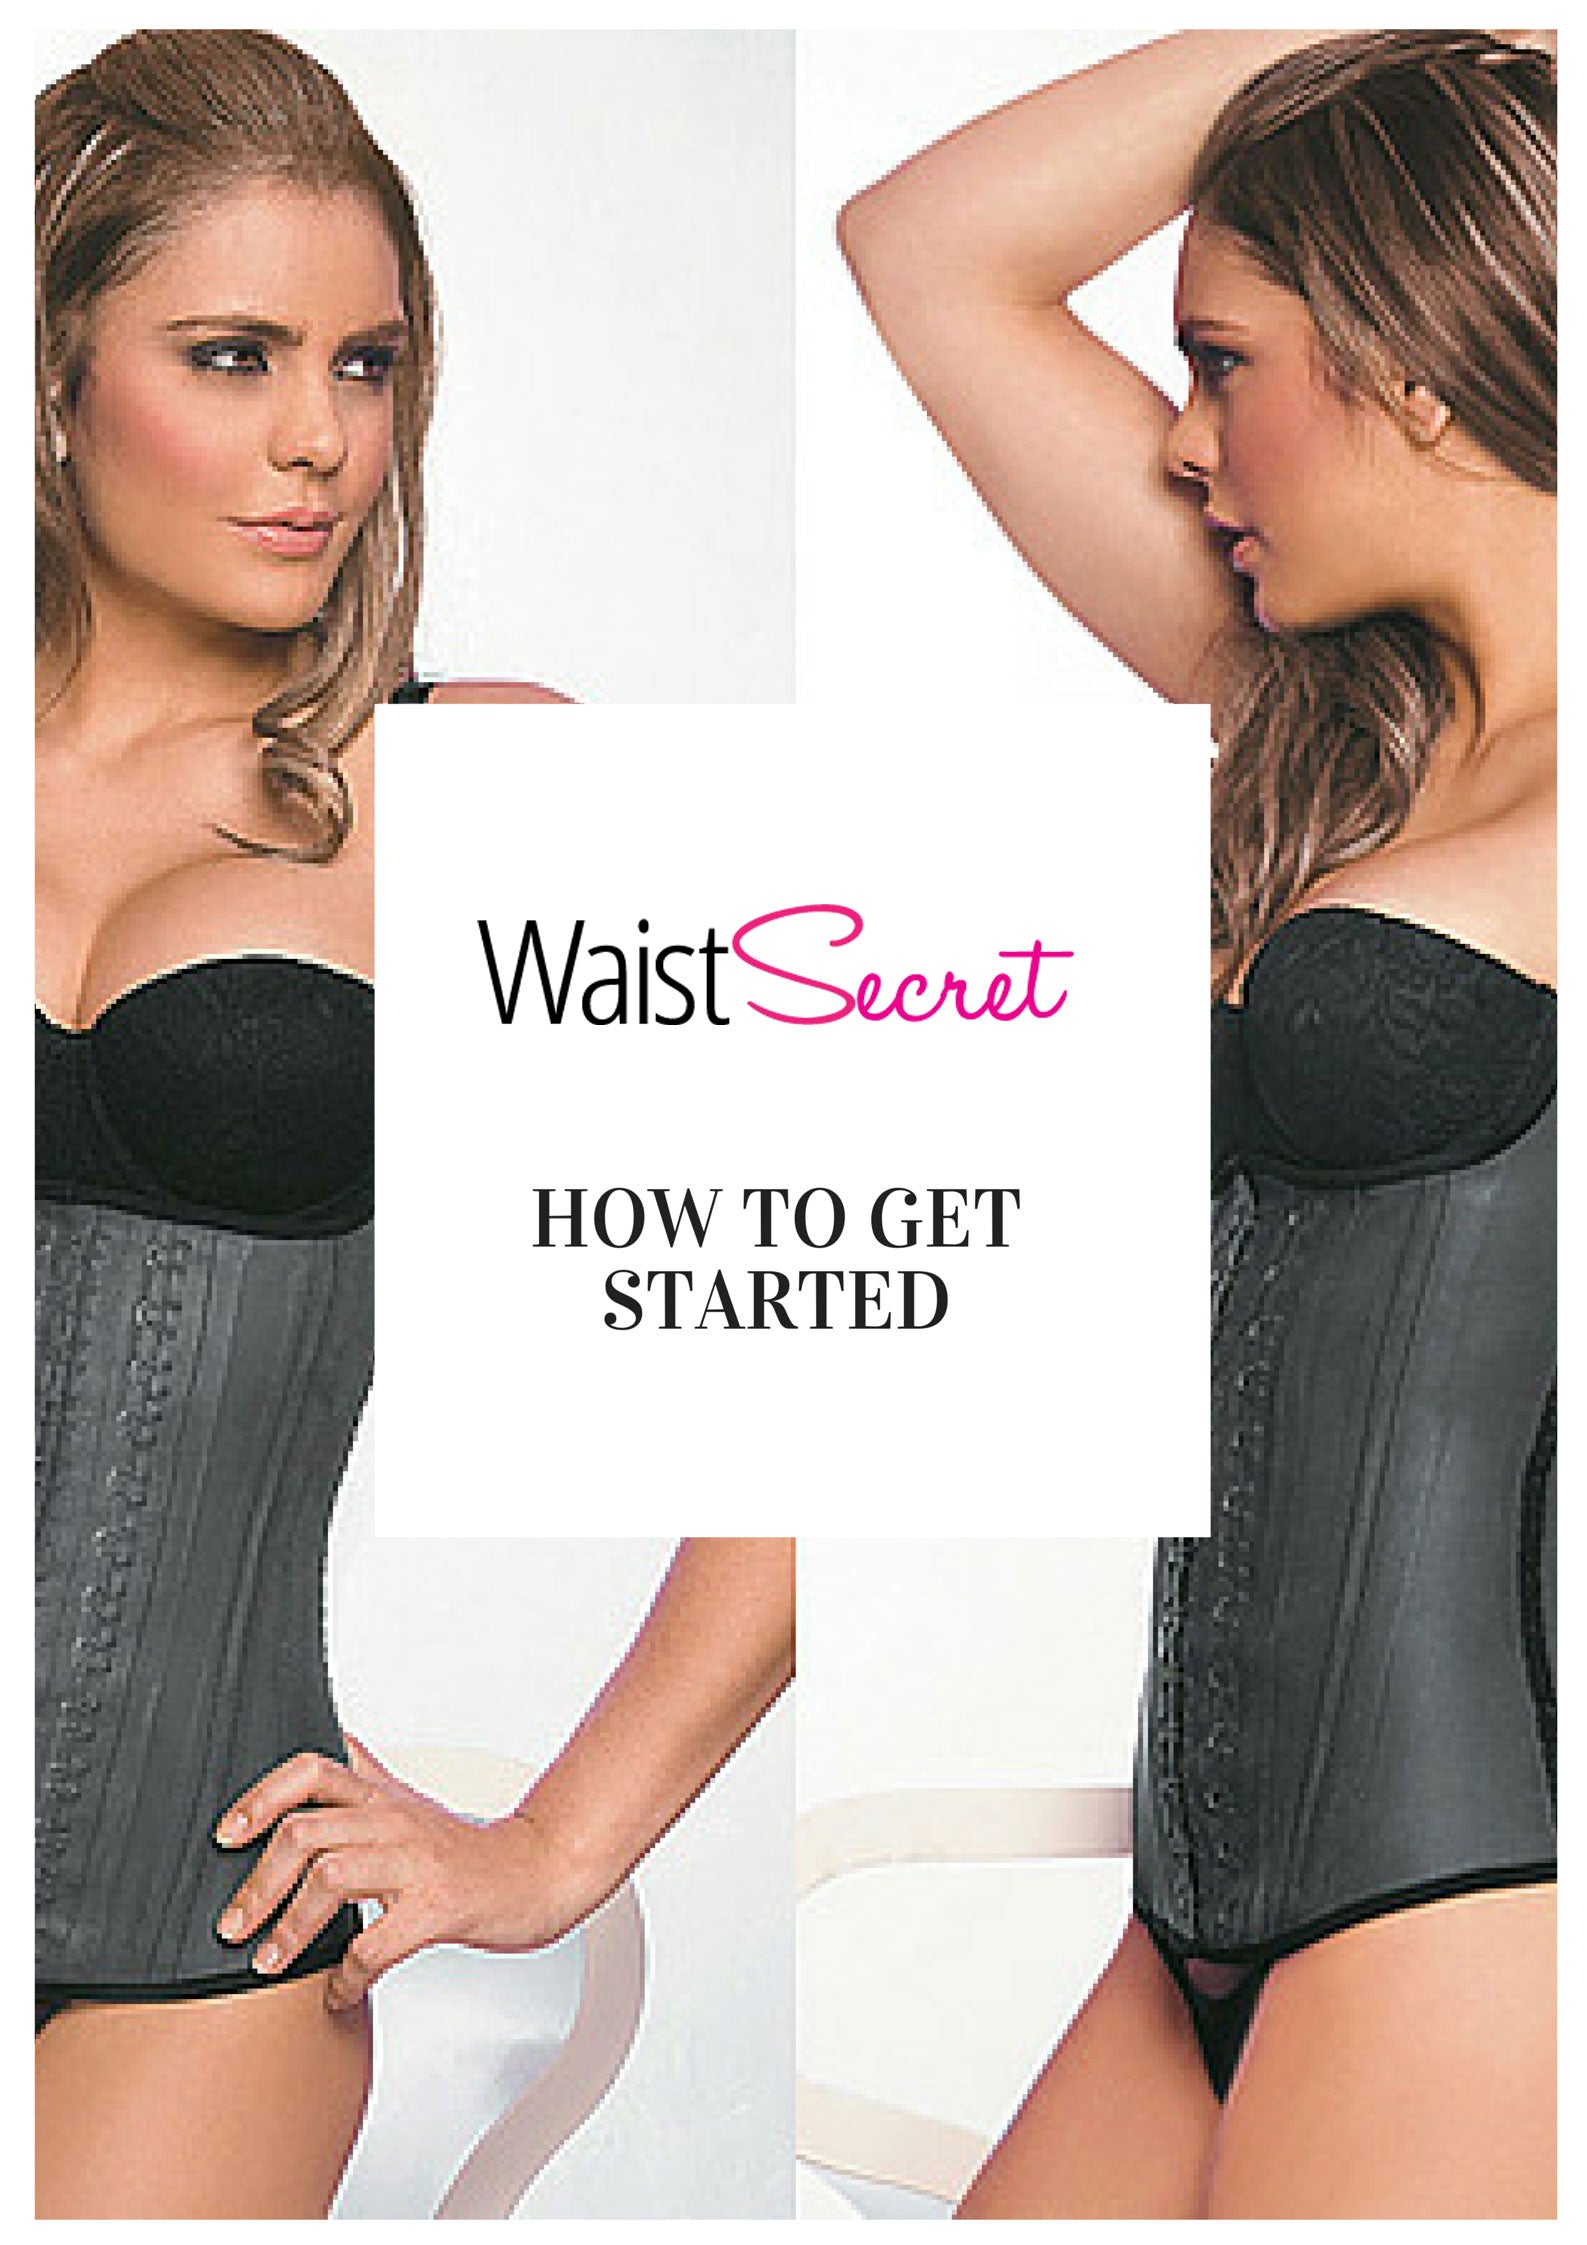 bbe9b6f5e7 We at WaistSecret want you to enjoy your journey into waist training. It is  important to pick out the right kind of waist trainer. If you are starting  out